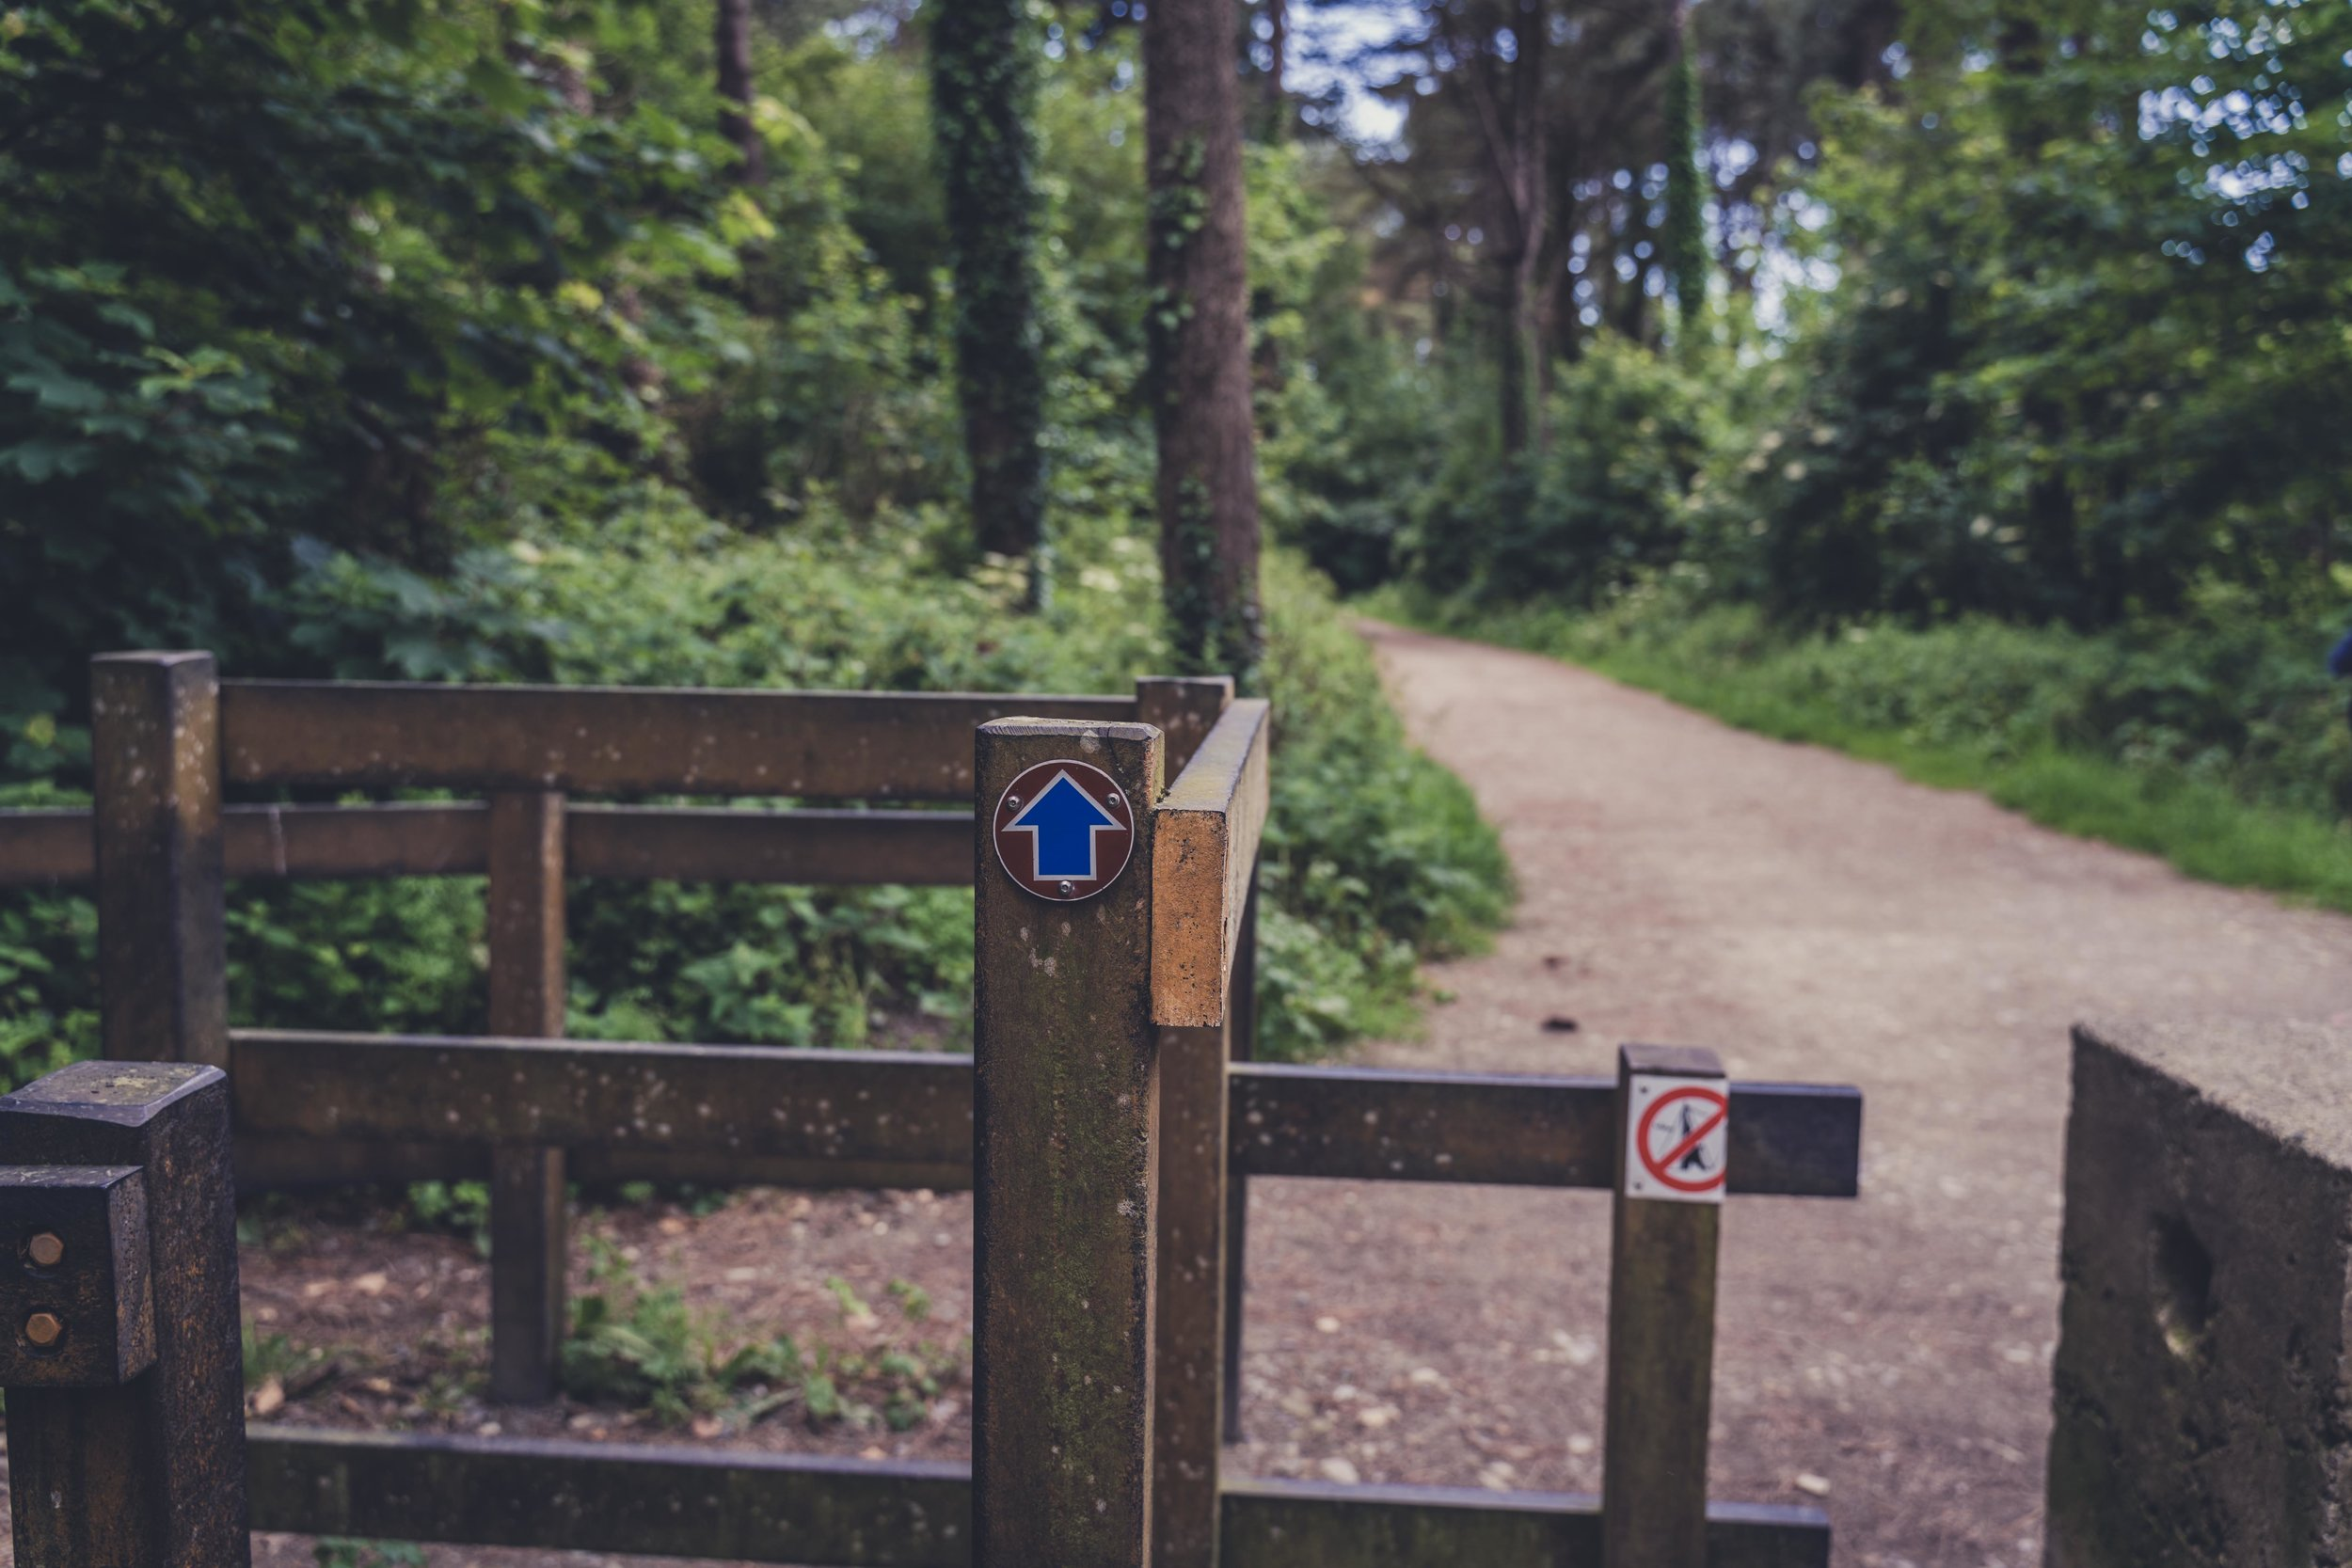 The Raven forest and beach wexford ireland walking signs.jpg